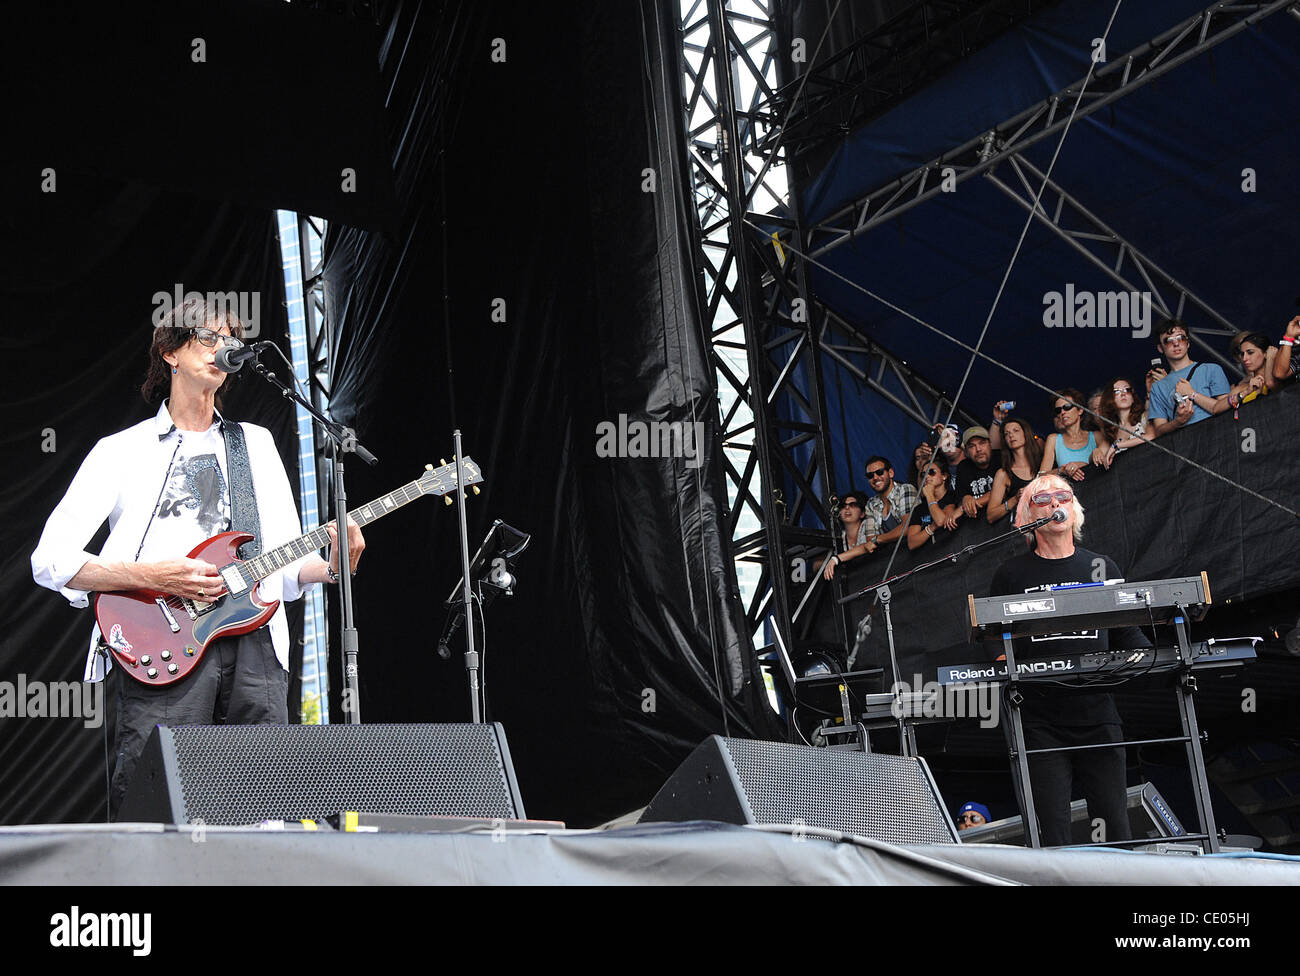 Aug 7, 2011 - Chicago, Illinois; USA - Musician RICK OCASEK and Keybordist GREG HAWKES of The Cars performs live - Stock Image